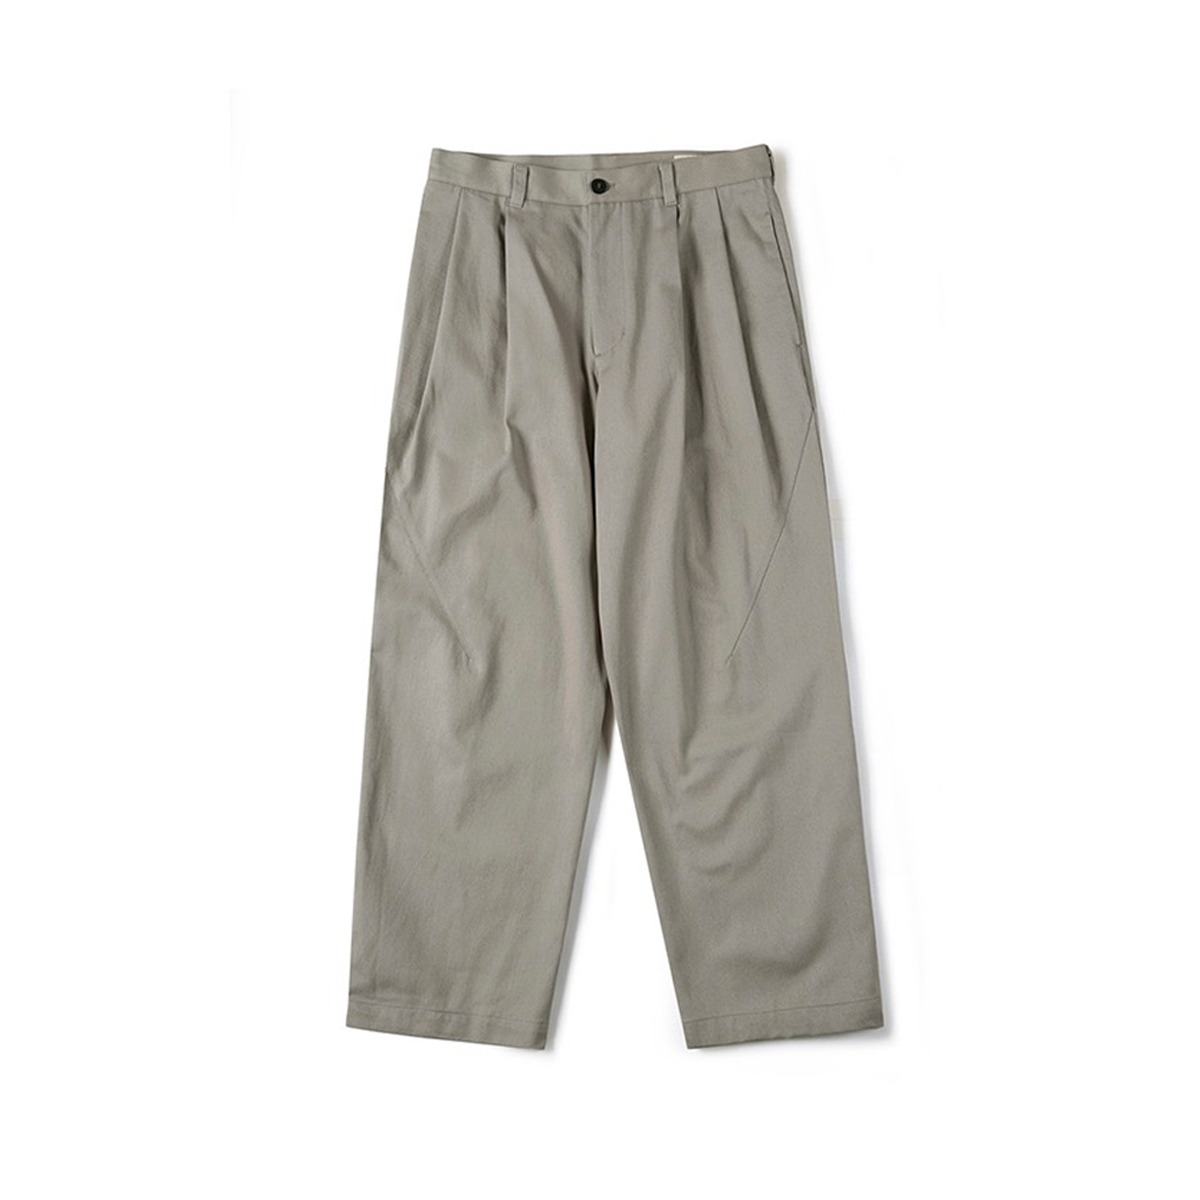 [SHIRTER] TWO TUCK JAR PANTS 'SAND BEIGE'